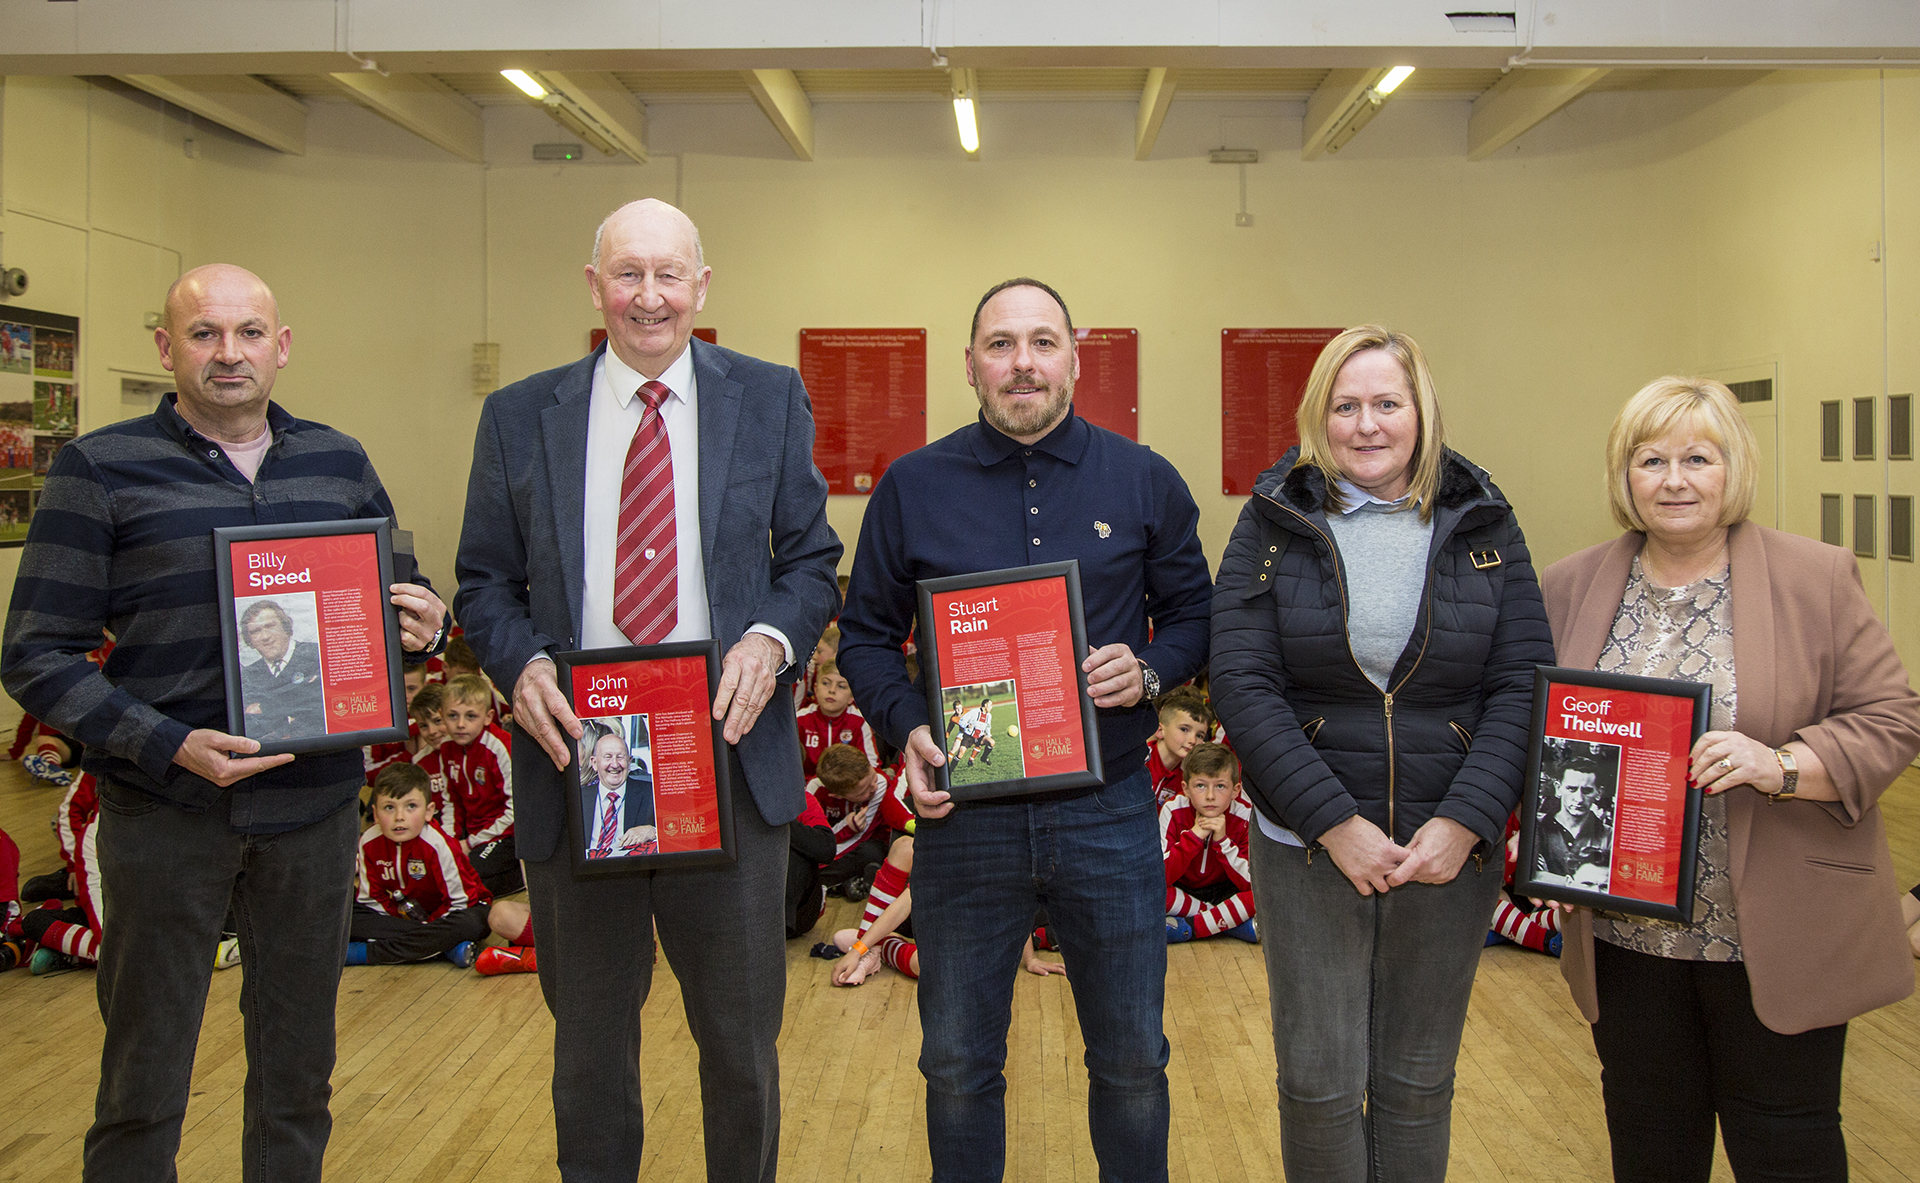 David Speed, John Gray, Stuart Rain and Geoff Thelwell's two daughters accepting their respective inductions in to the Connah's Quay Nomads Hall of Fame | © NCM Media